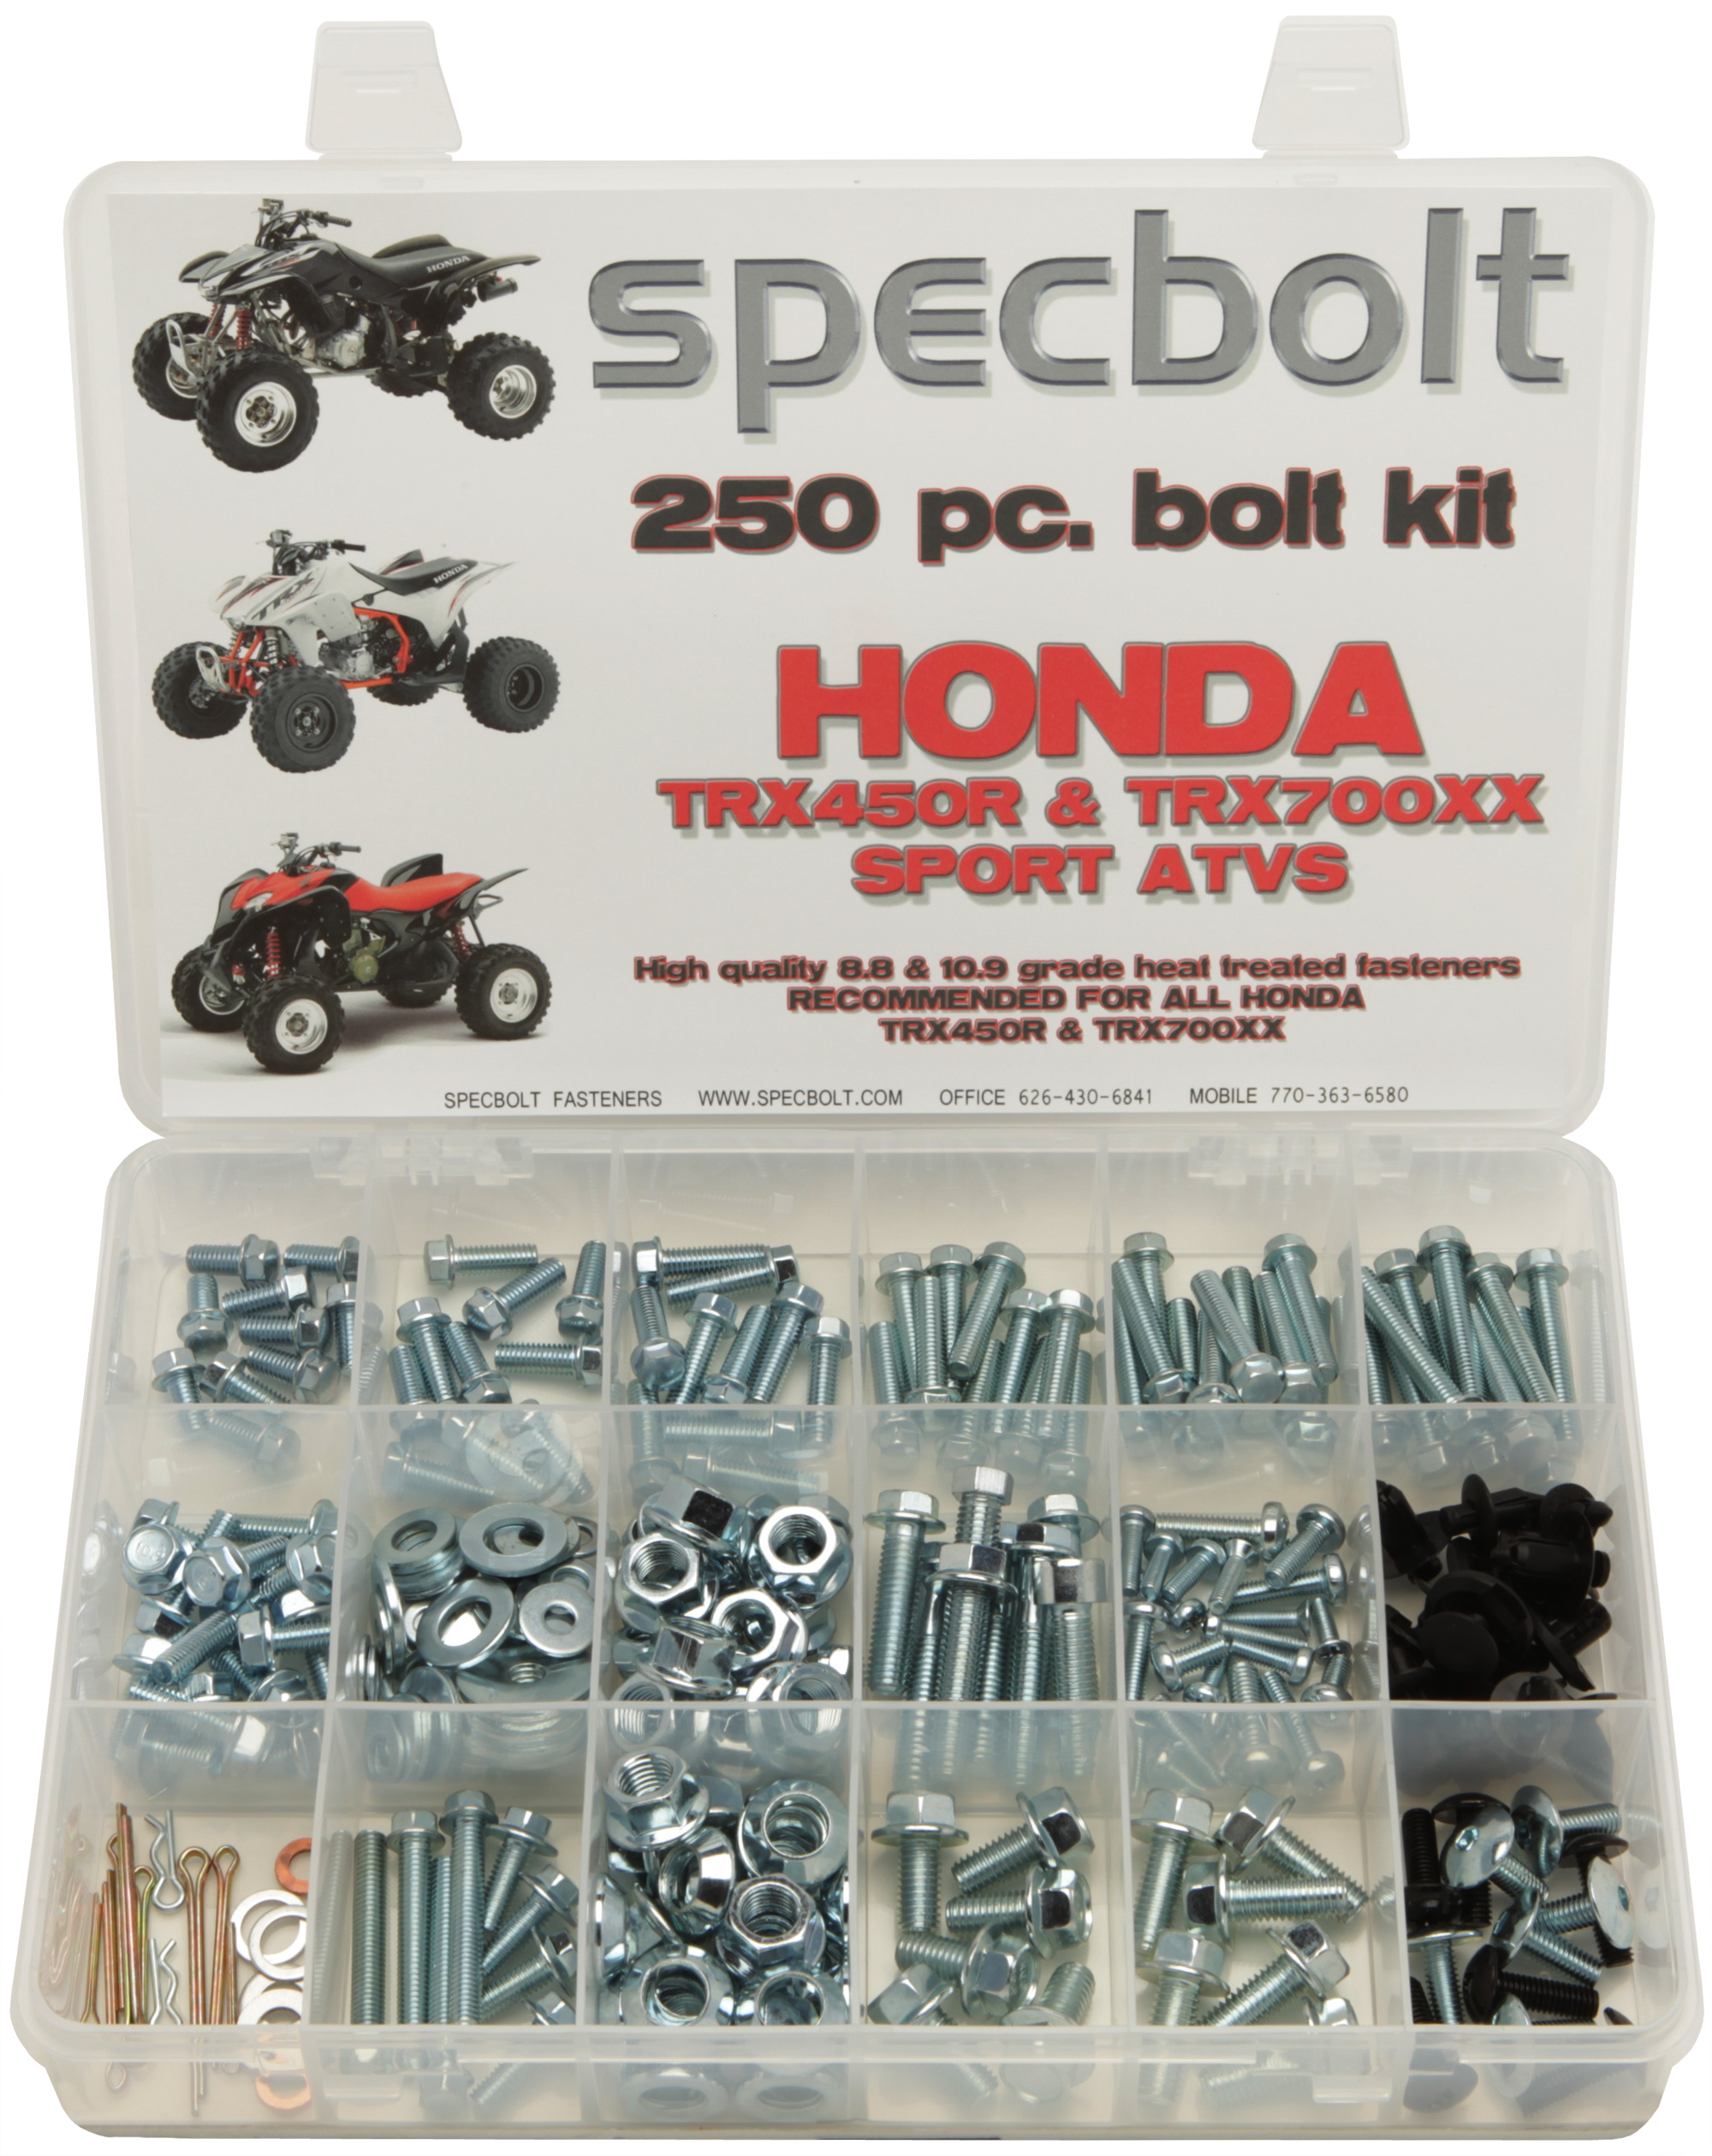 250 piece kit for honda trx450r atv, specbolt